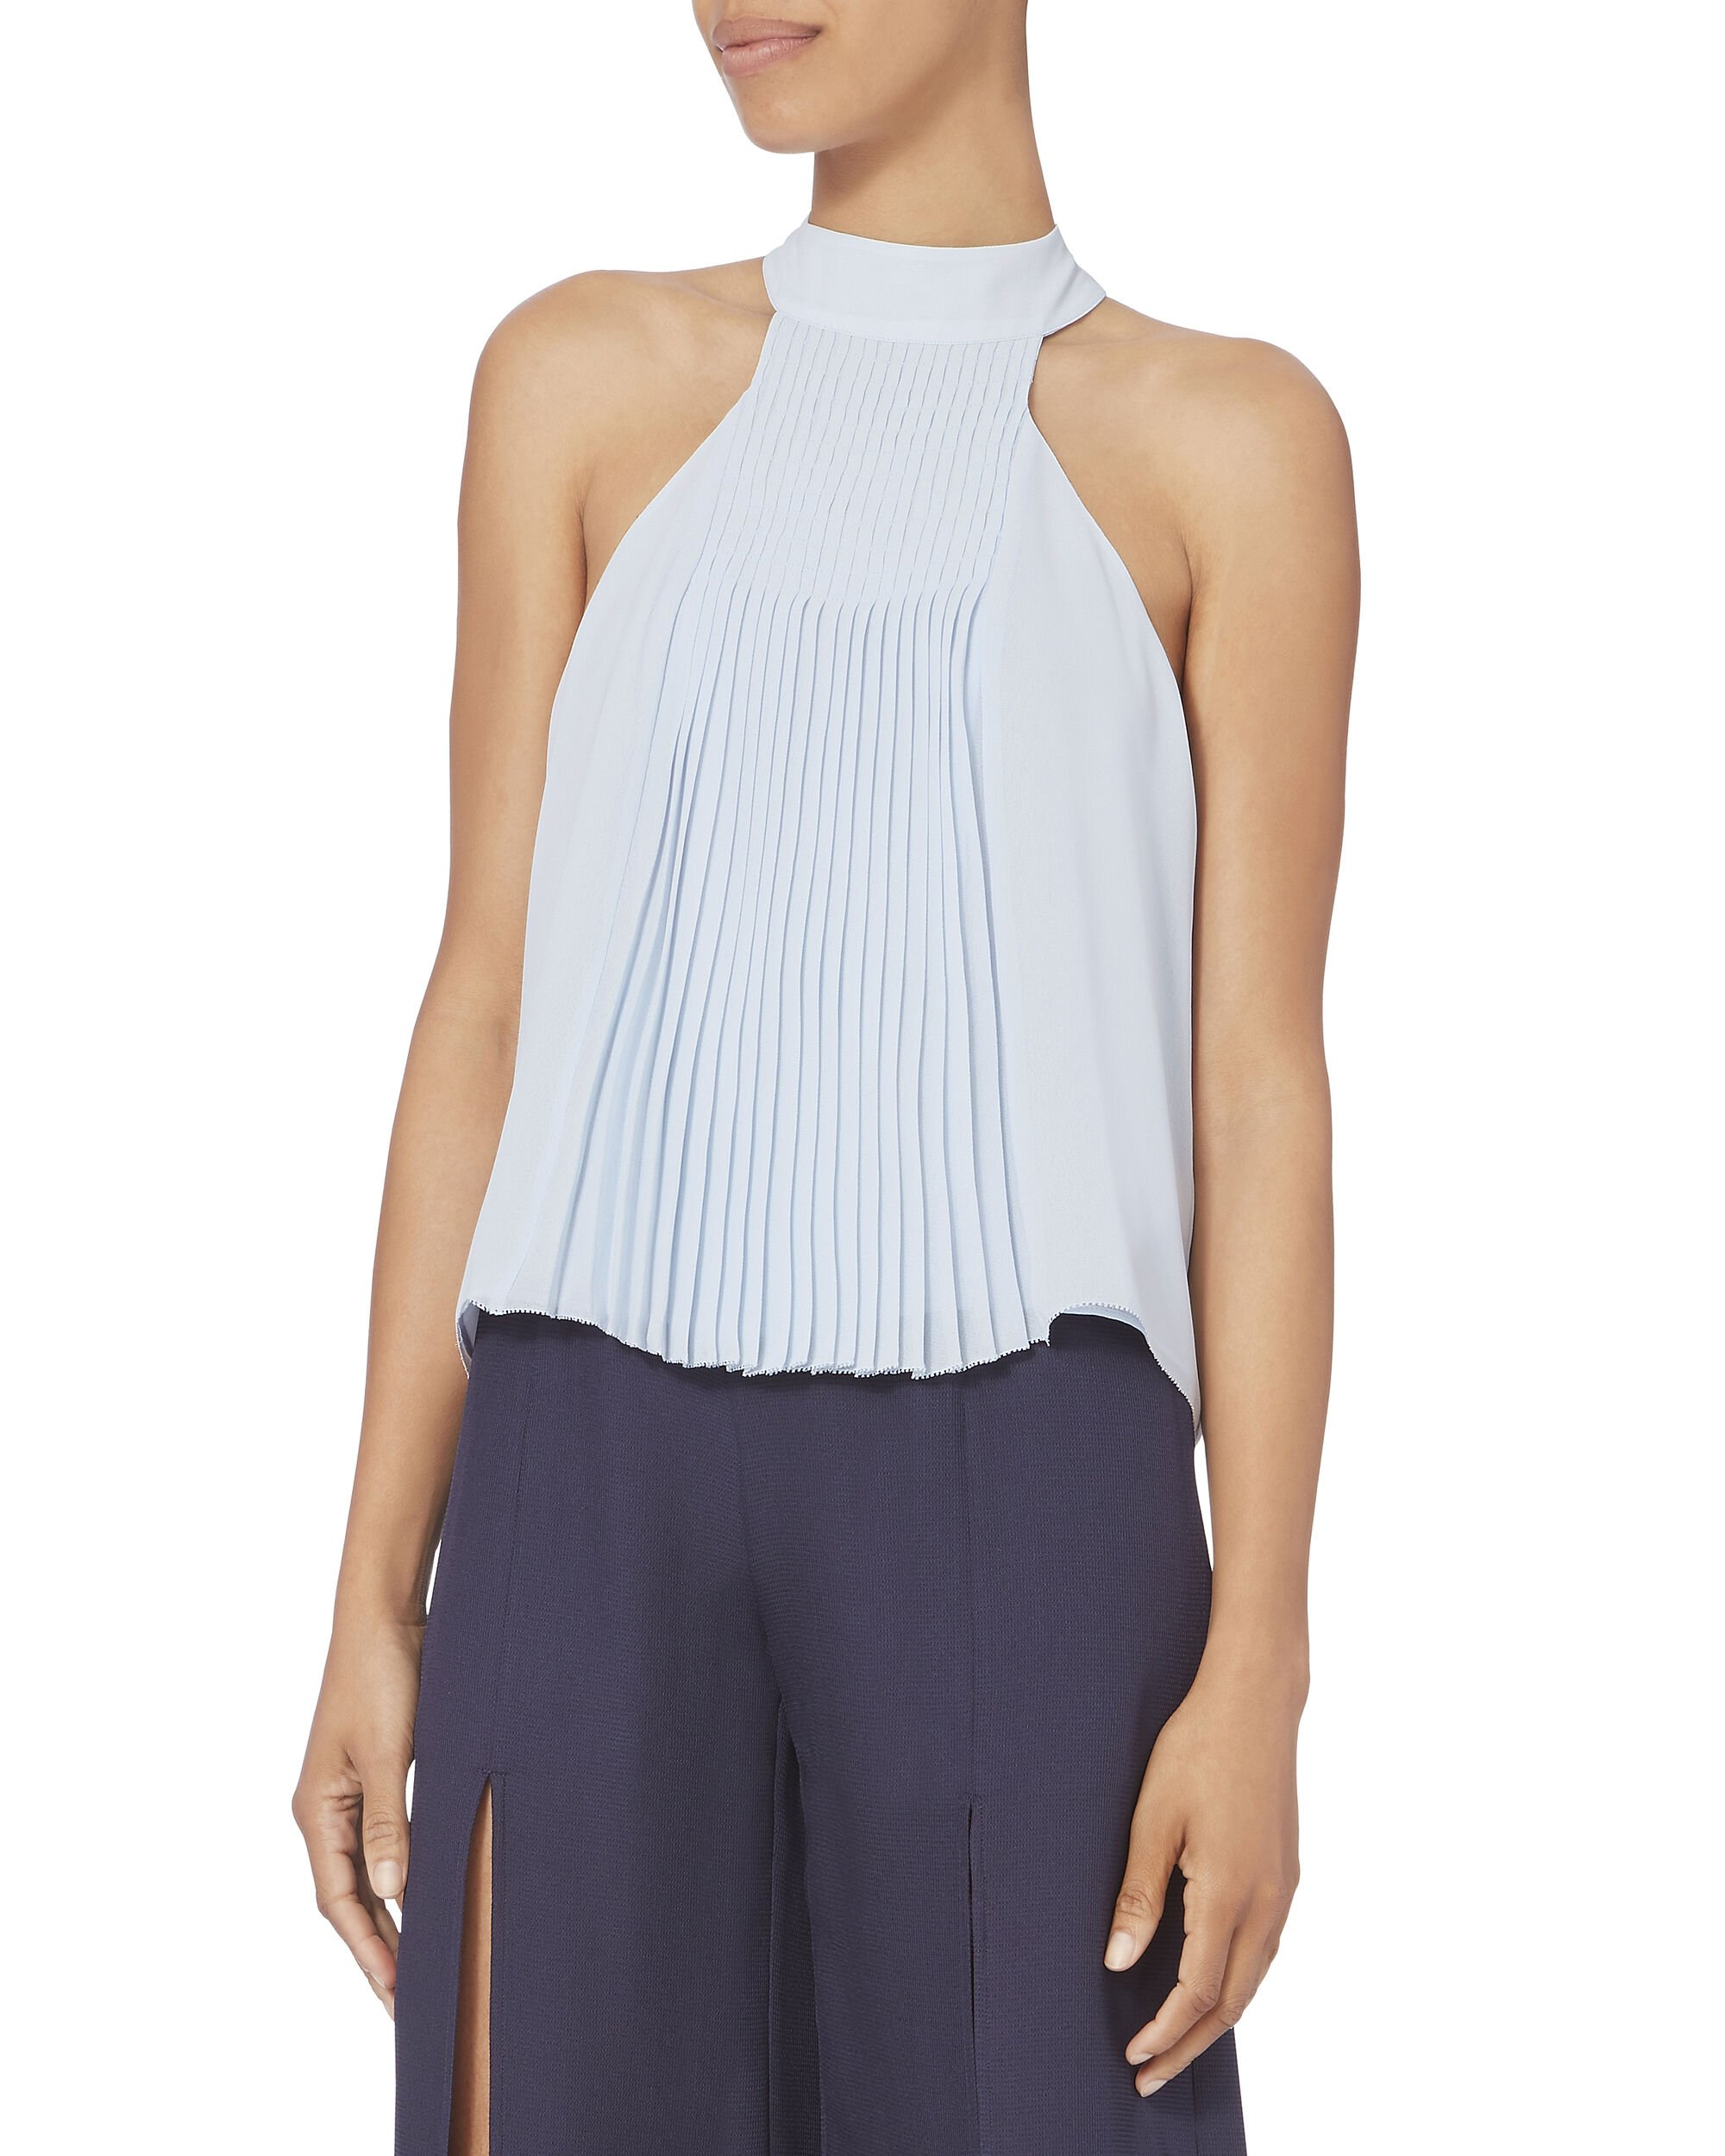 Blair Pleated Top, BLUE-LT, hi-res